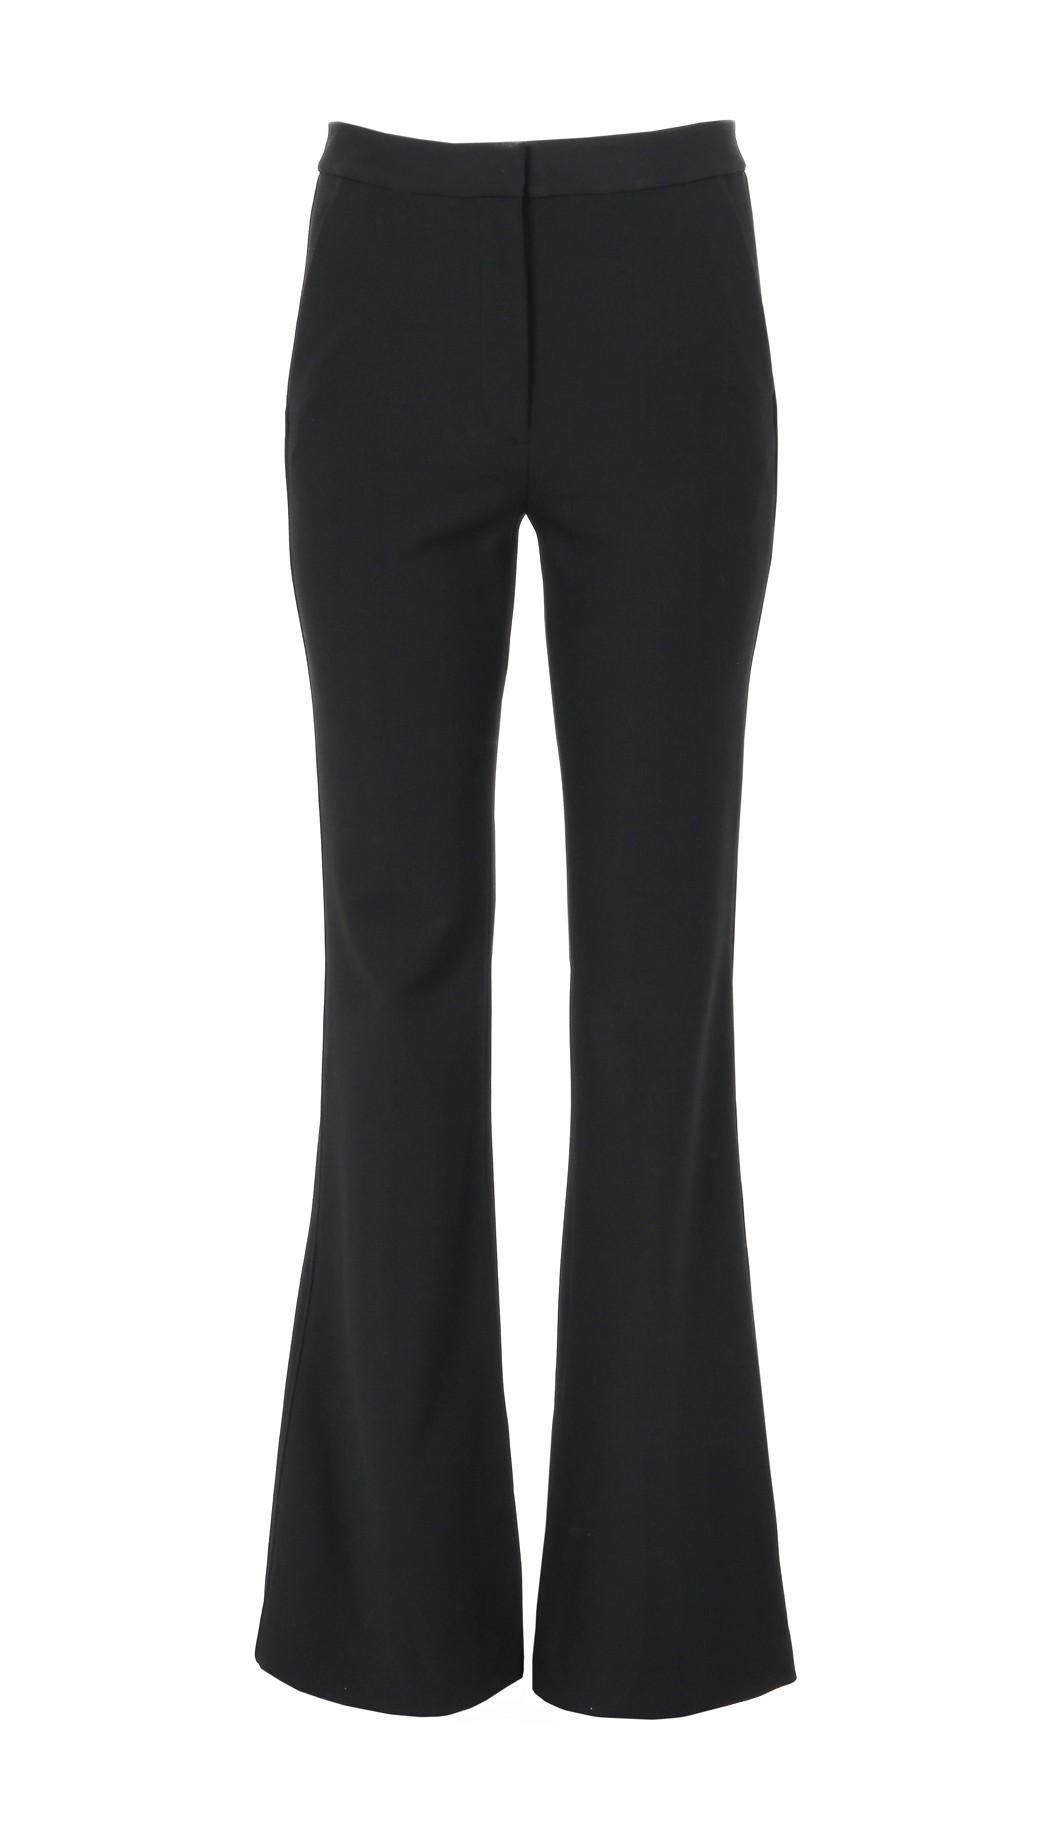 TIBI Anson Stretch Flared Pants in Ivory